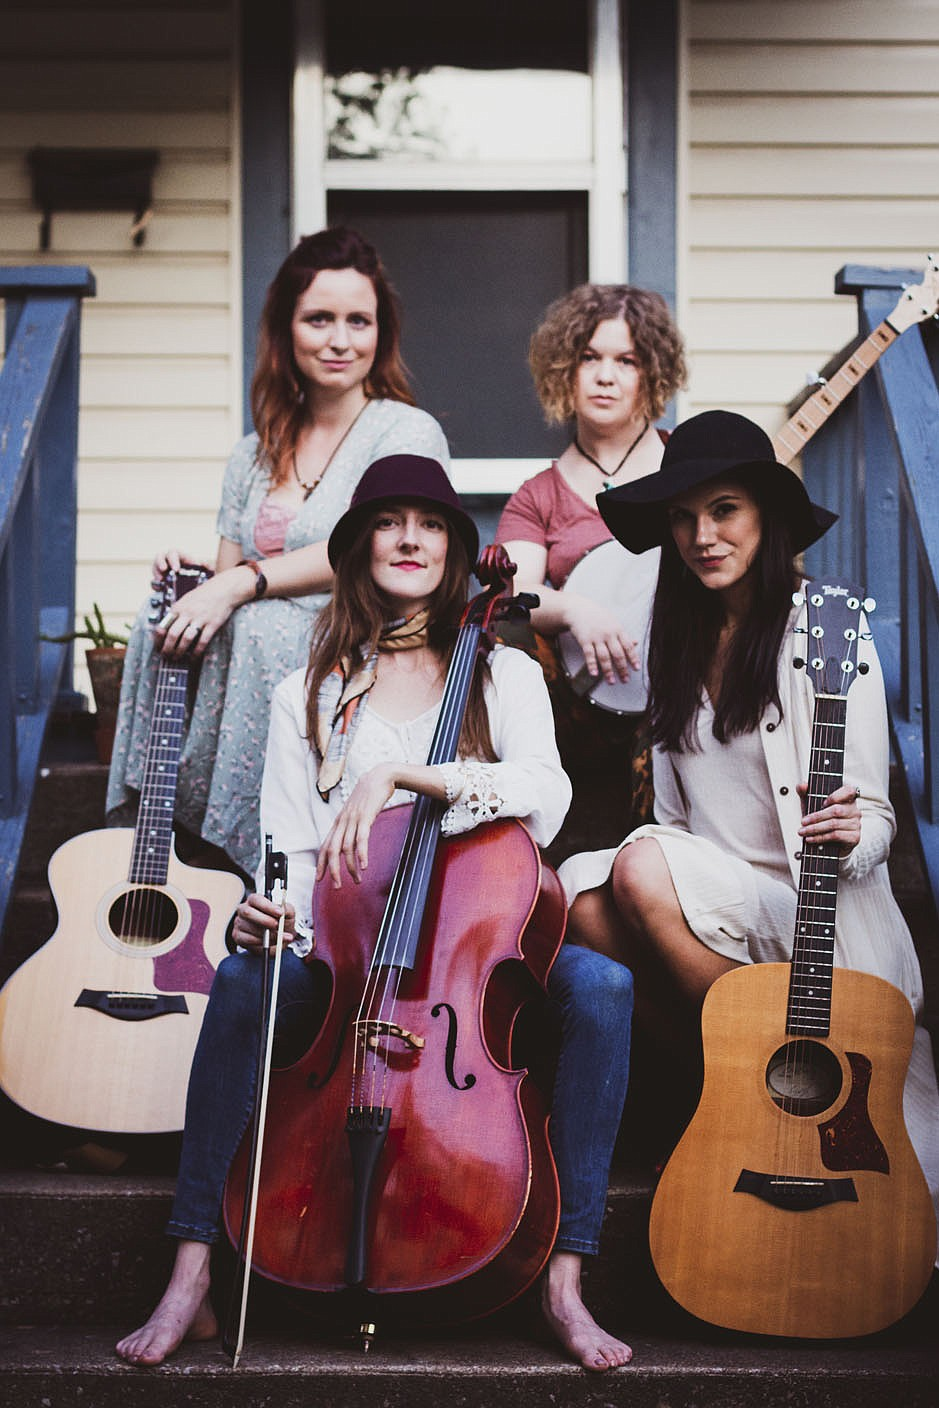 """Harmony-rich Fayetteville folk band Dandelion Heart will perform during the Gulley Park Concert Series July 29 and during Terrific Tuesdays at the Botanical Garden of the Ozarks on Aug. 17. The American foursome released their debut album together, """"Retrospect,"""" Nov. 8.  (Courtesy Photo)"""